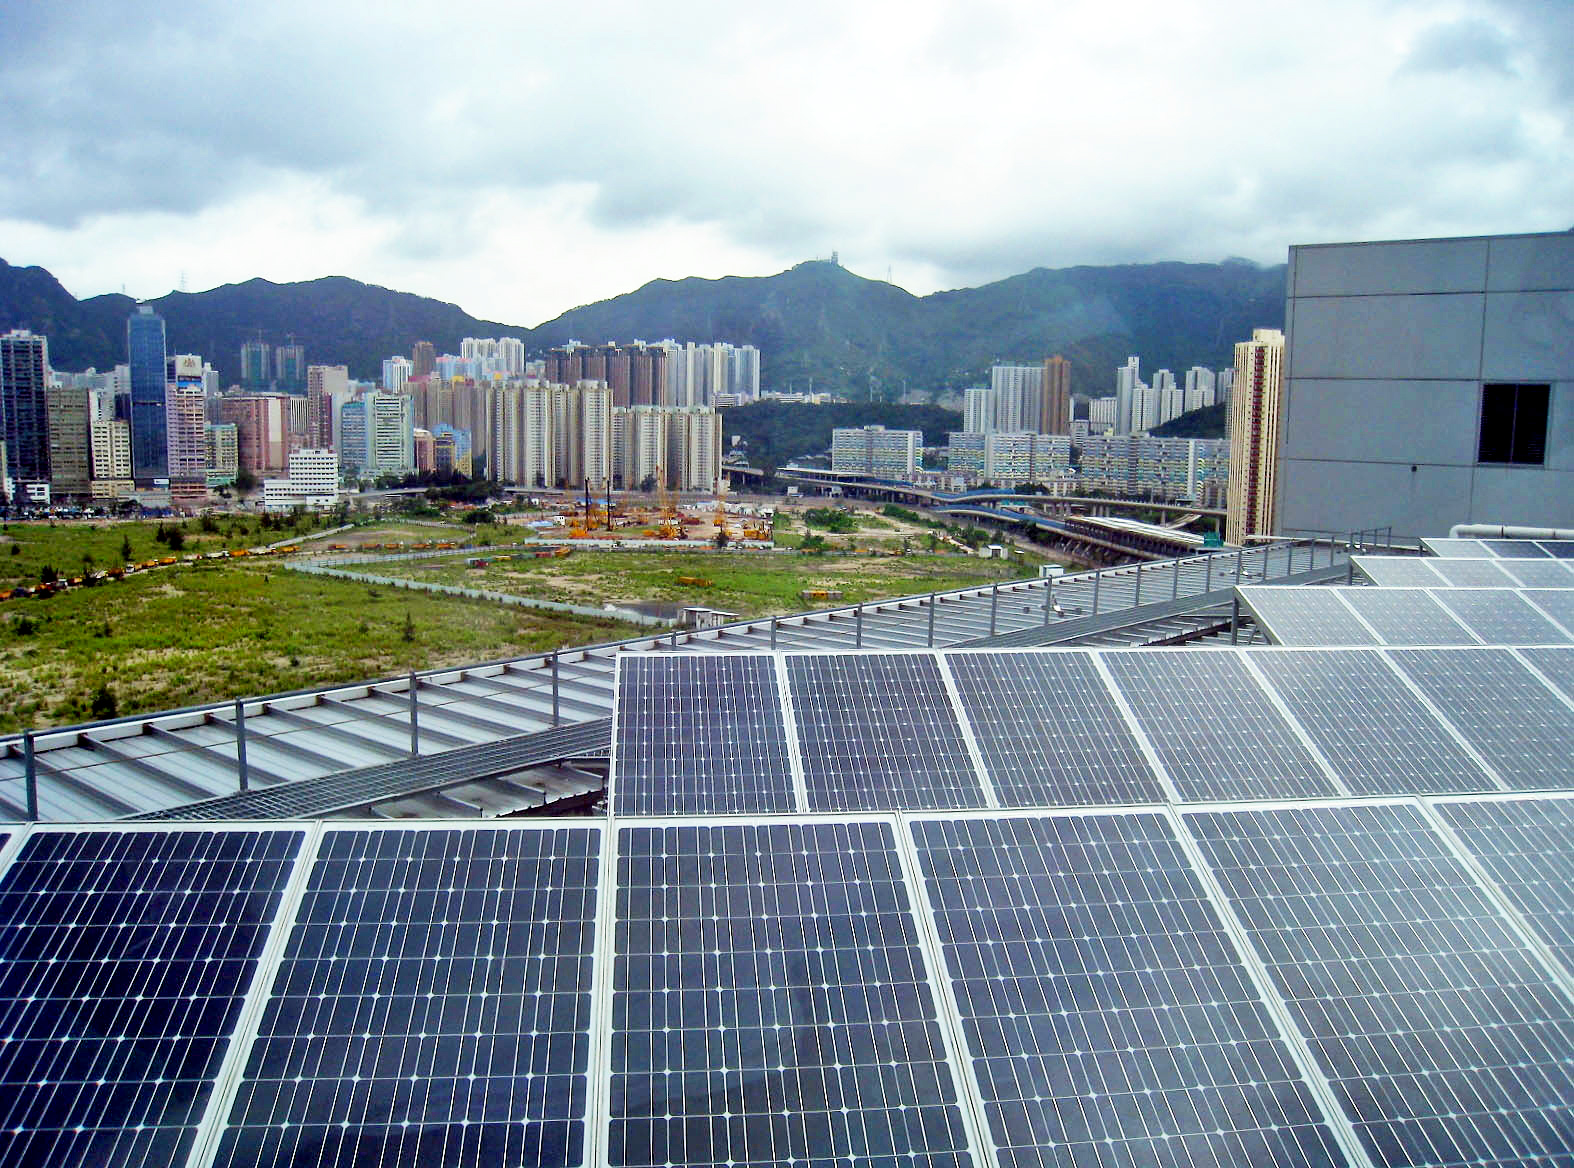 China's booming renewable energy market set to blow away emissions targets by 2020